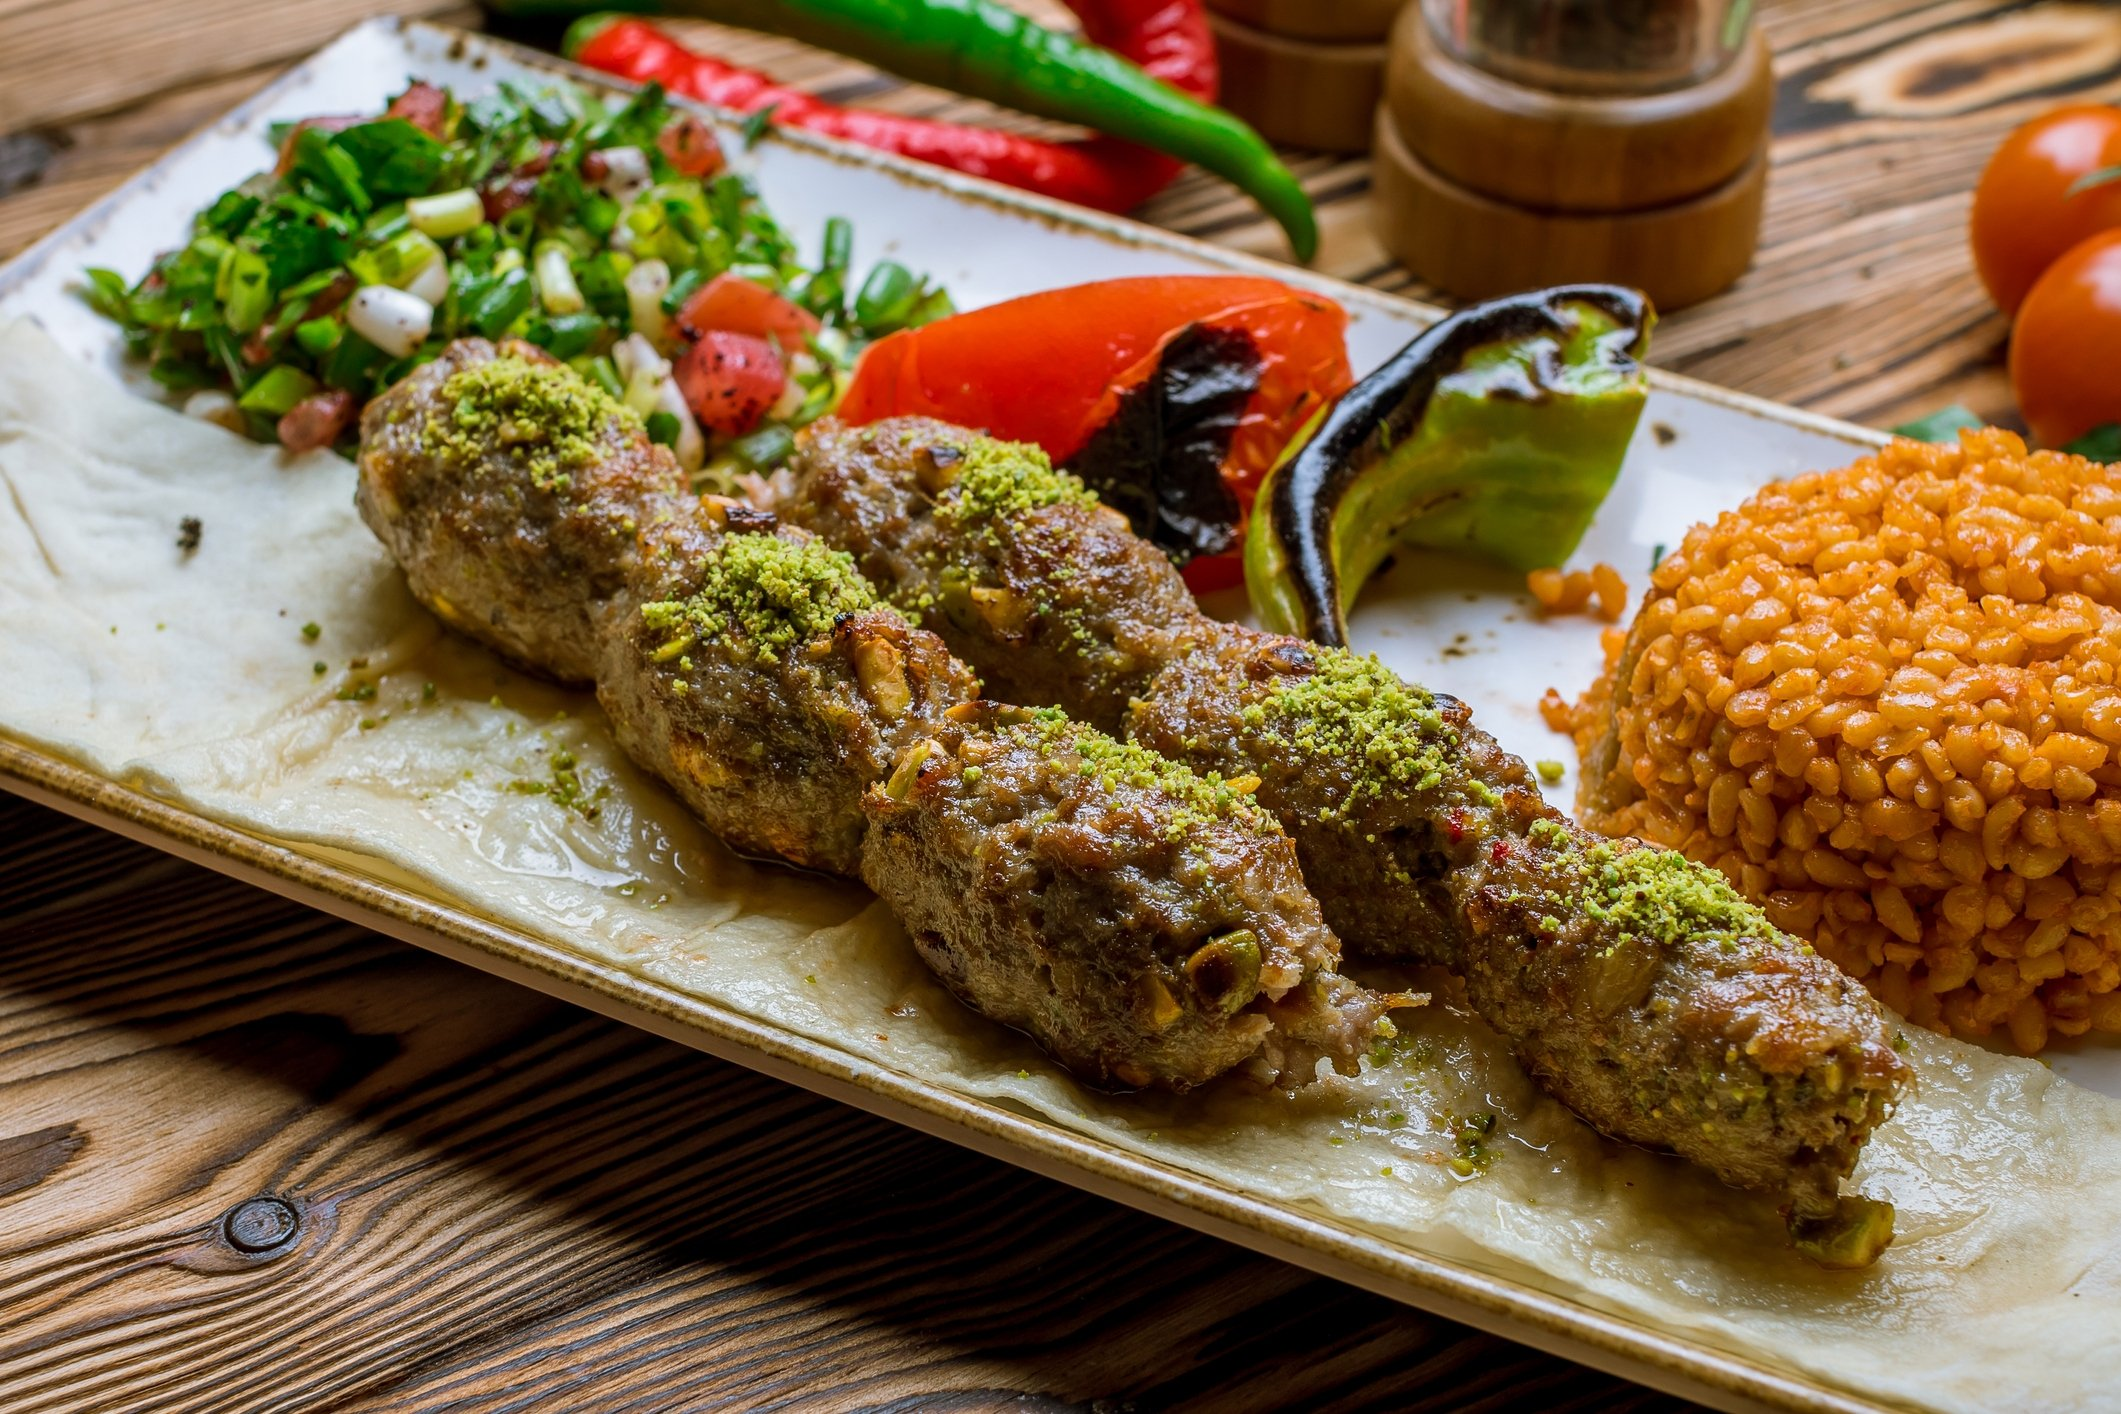 Antepfıstıklı kebab can be topped off with pistachios, but it is customary to add the nuts inside instead. (iStock Photo)